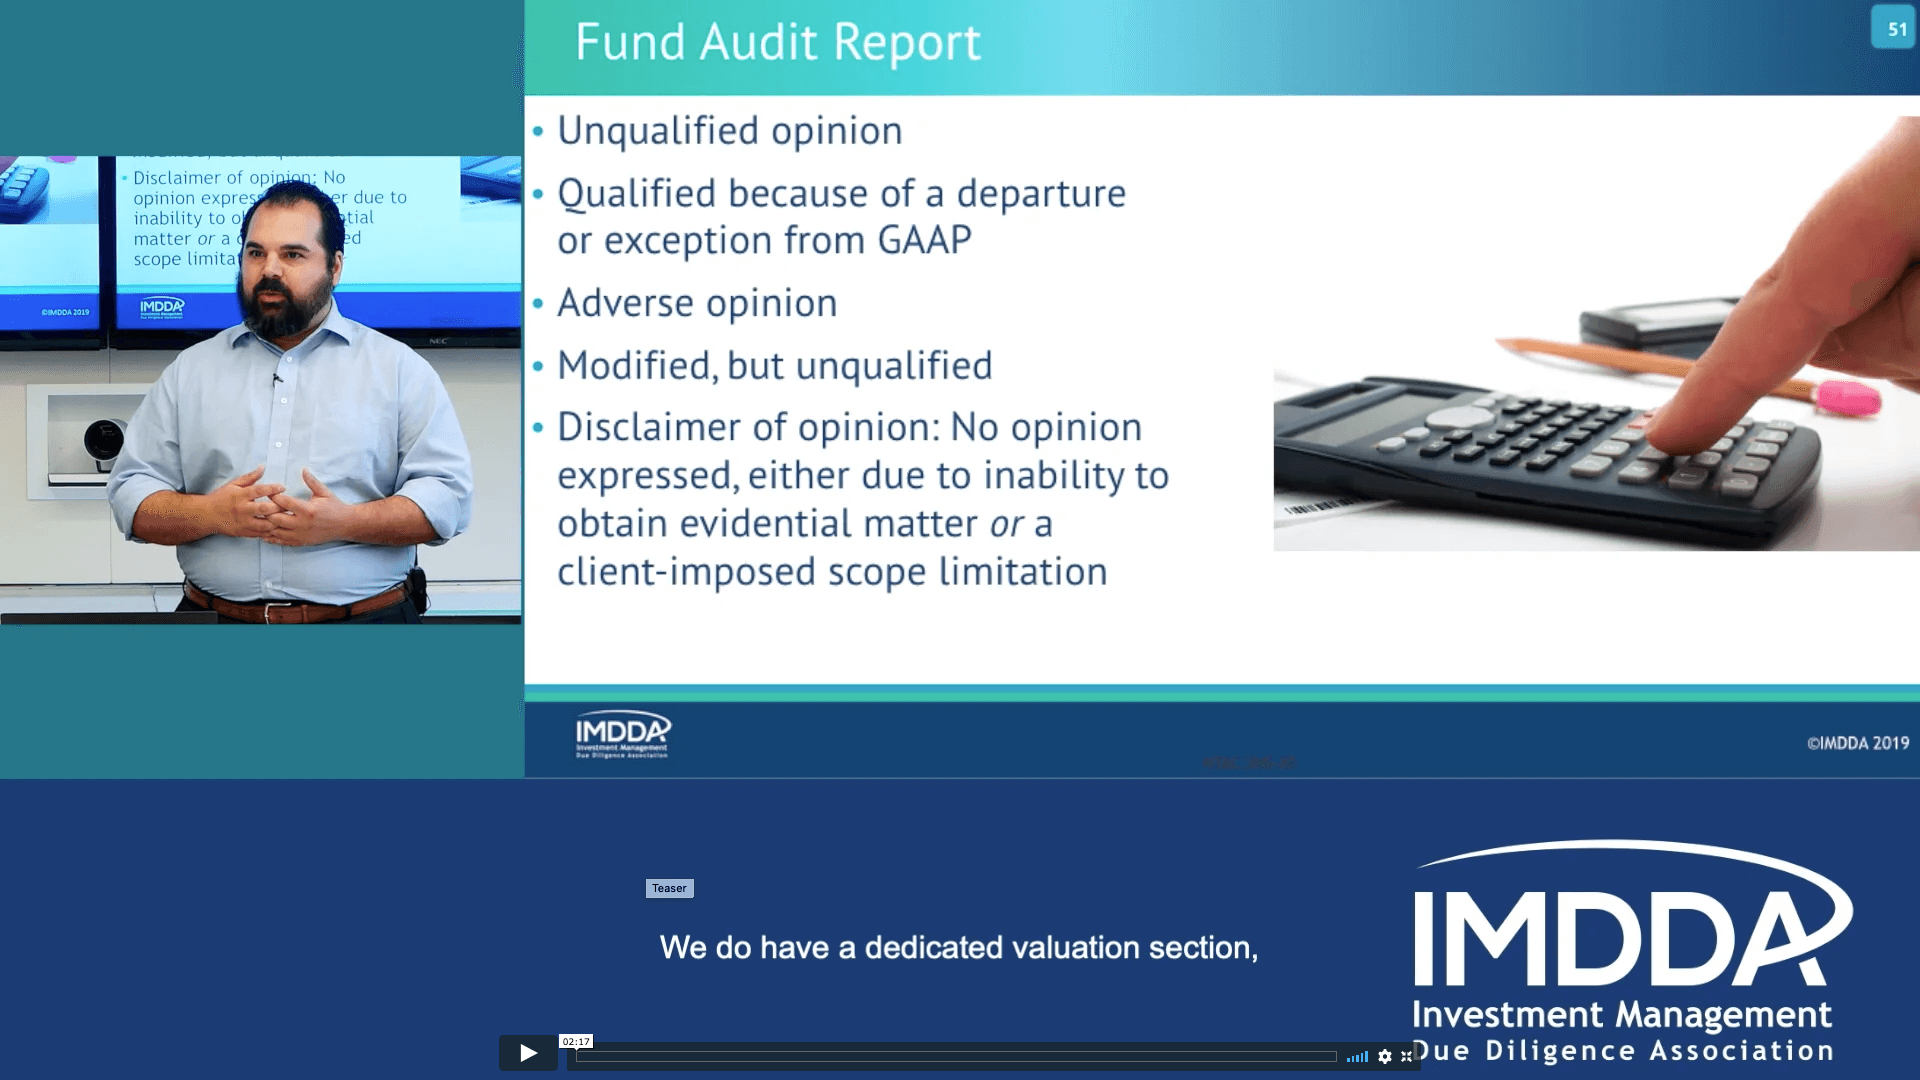 Private Fund Operational Due Diligence – PE, VC, Private Debt & Credit, Real Assets, and Infrastructure funds